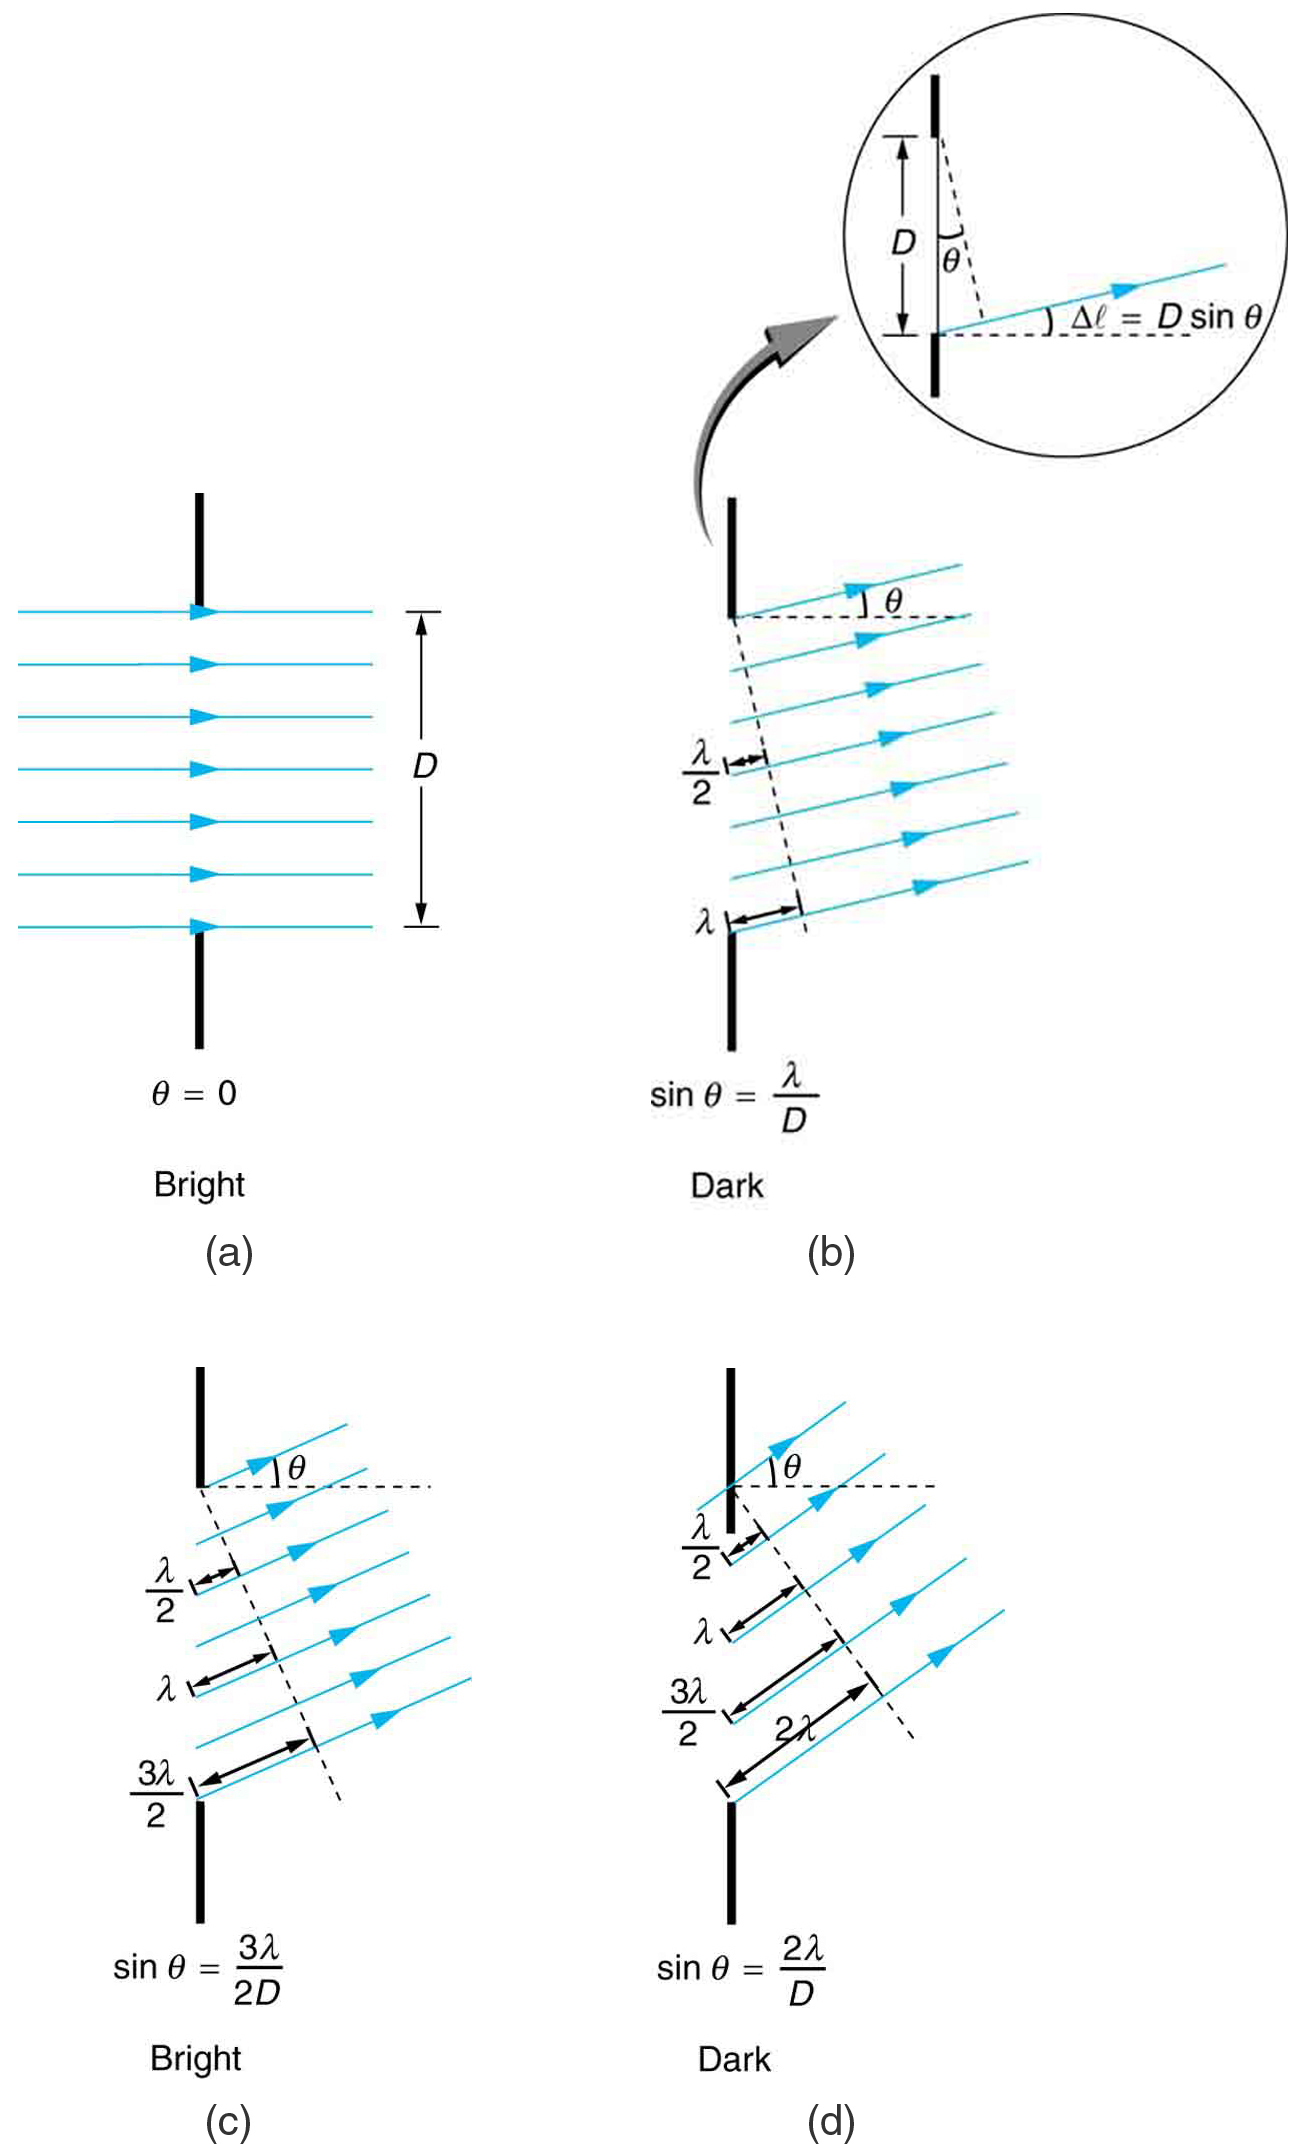 Single Slit Diffraction Physics For Chemists Derived Copy Of Ocean Wave Motion Diagram Free Download Wiring Schematic The Figure Shows Four Schematics A Ray Bundle Passing Through